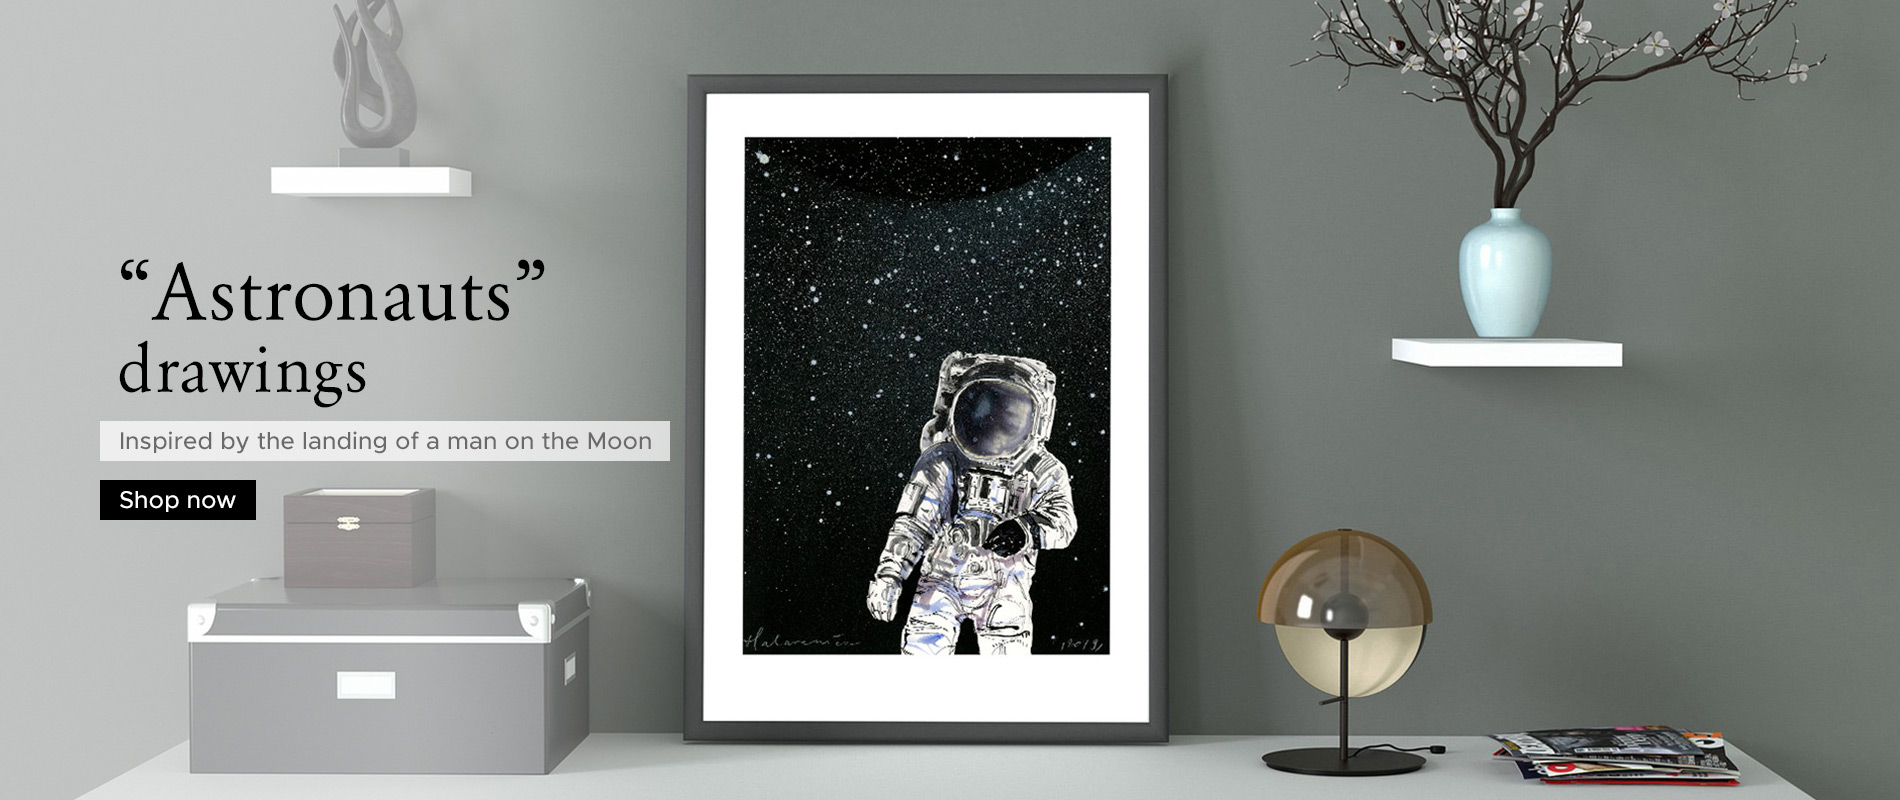 Unique 'Astronauts' drawings